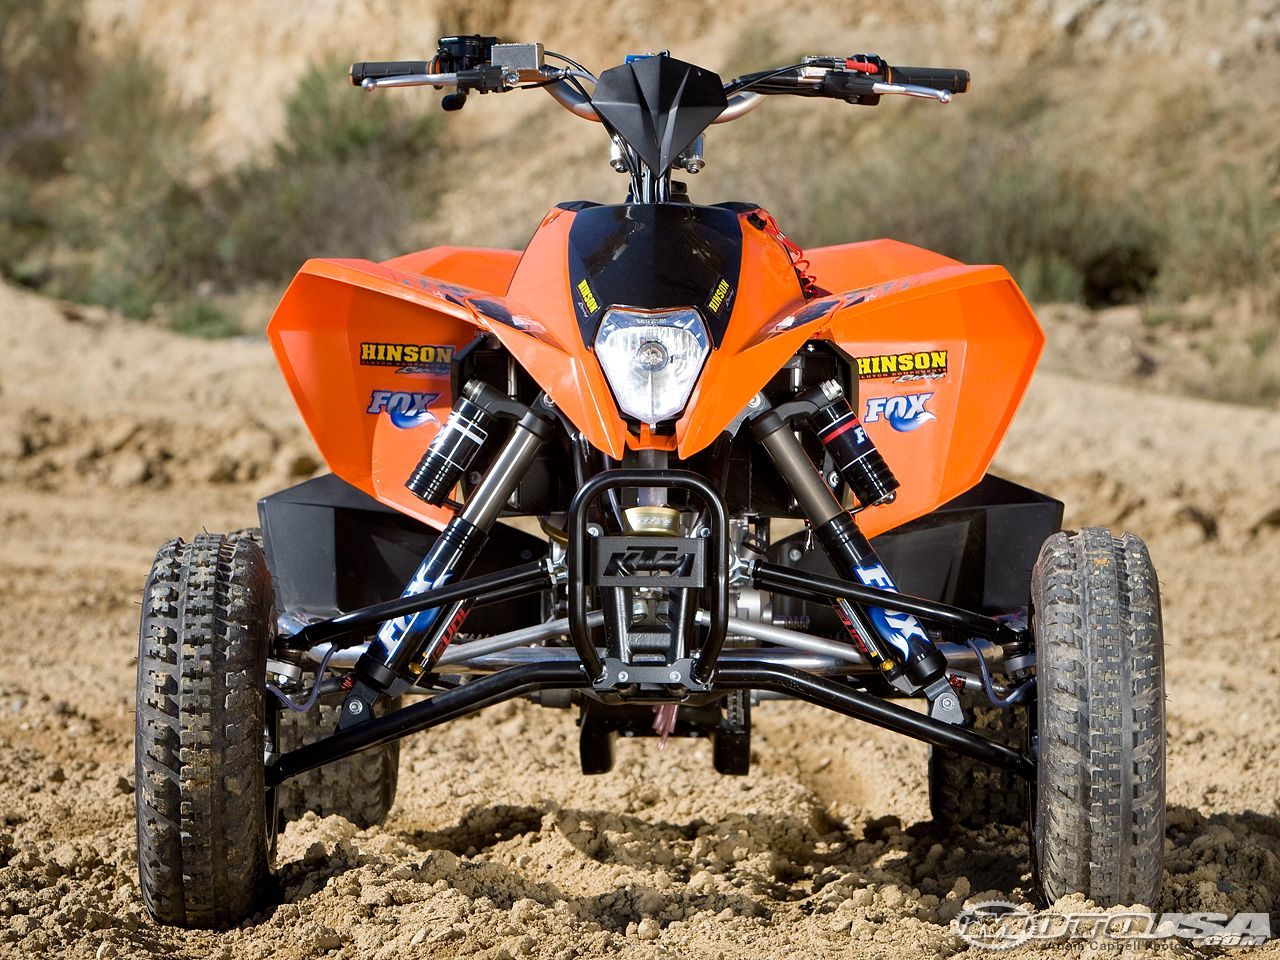 Ktm Quad Yes Please To Go With My Man S 625 Ktm Ktm 450